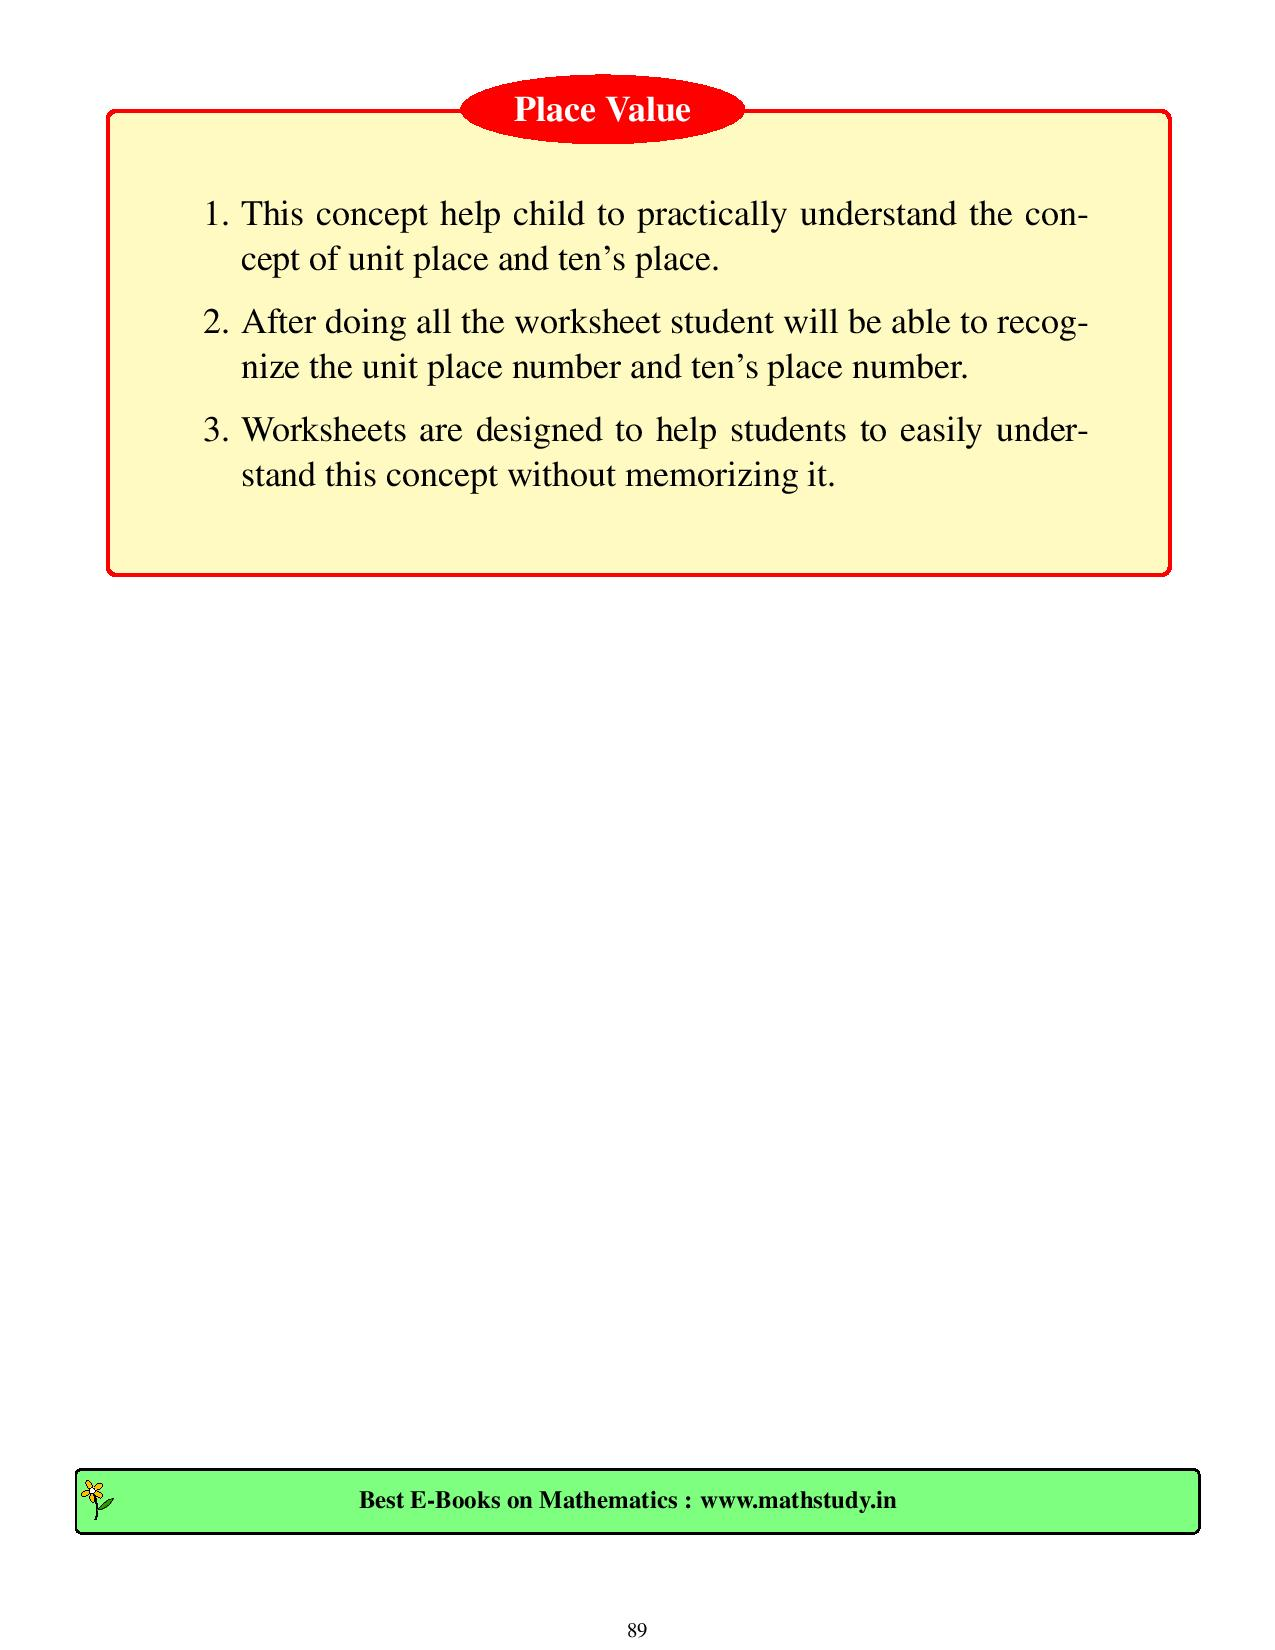 maths online practice tests quizzes for grade 1